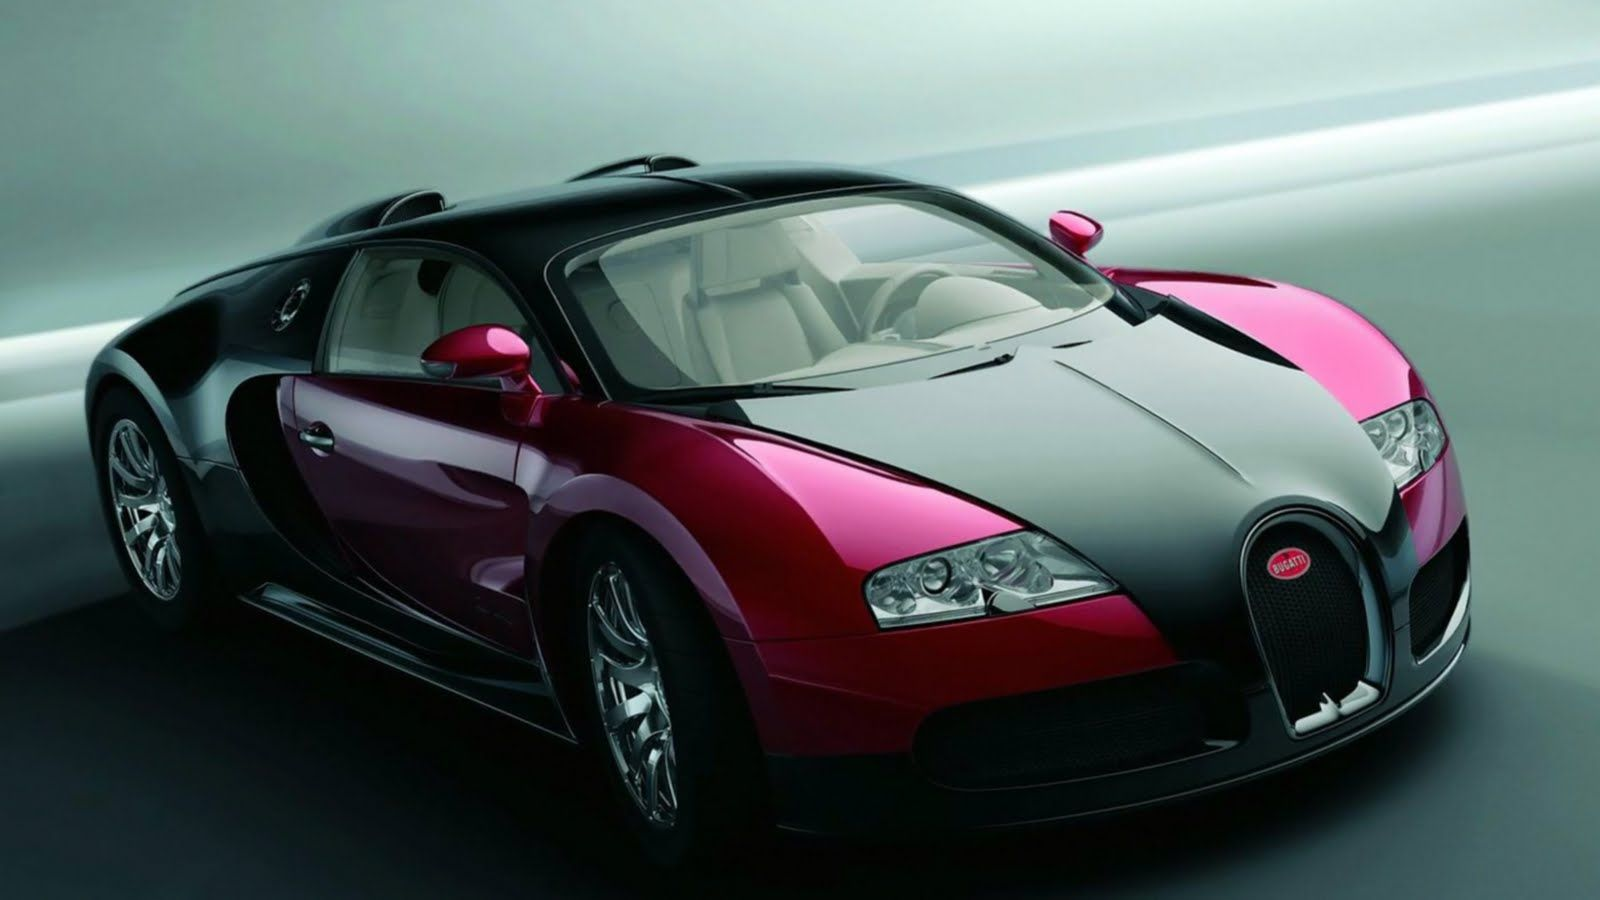 Is Wallpaper Expensive bugatti veyron car sports car racing car luxury sports cars hd